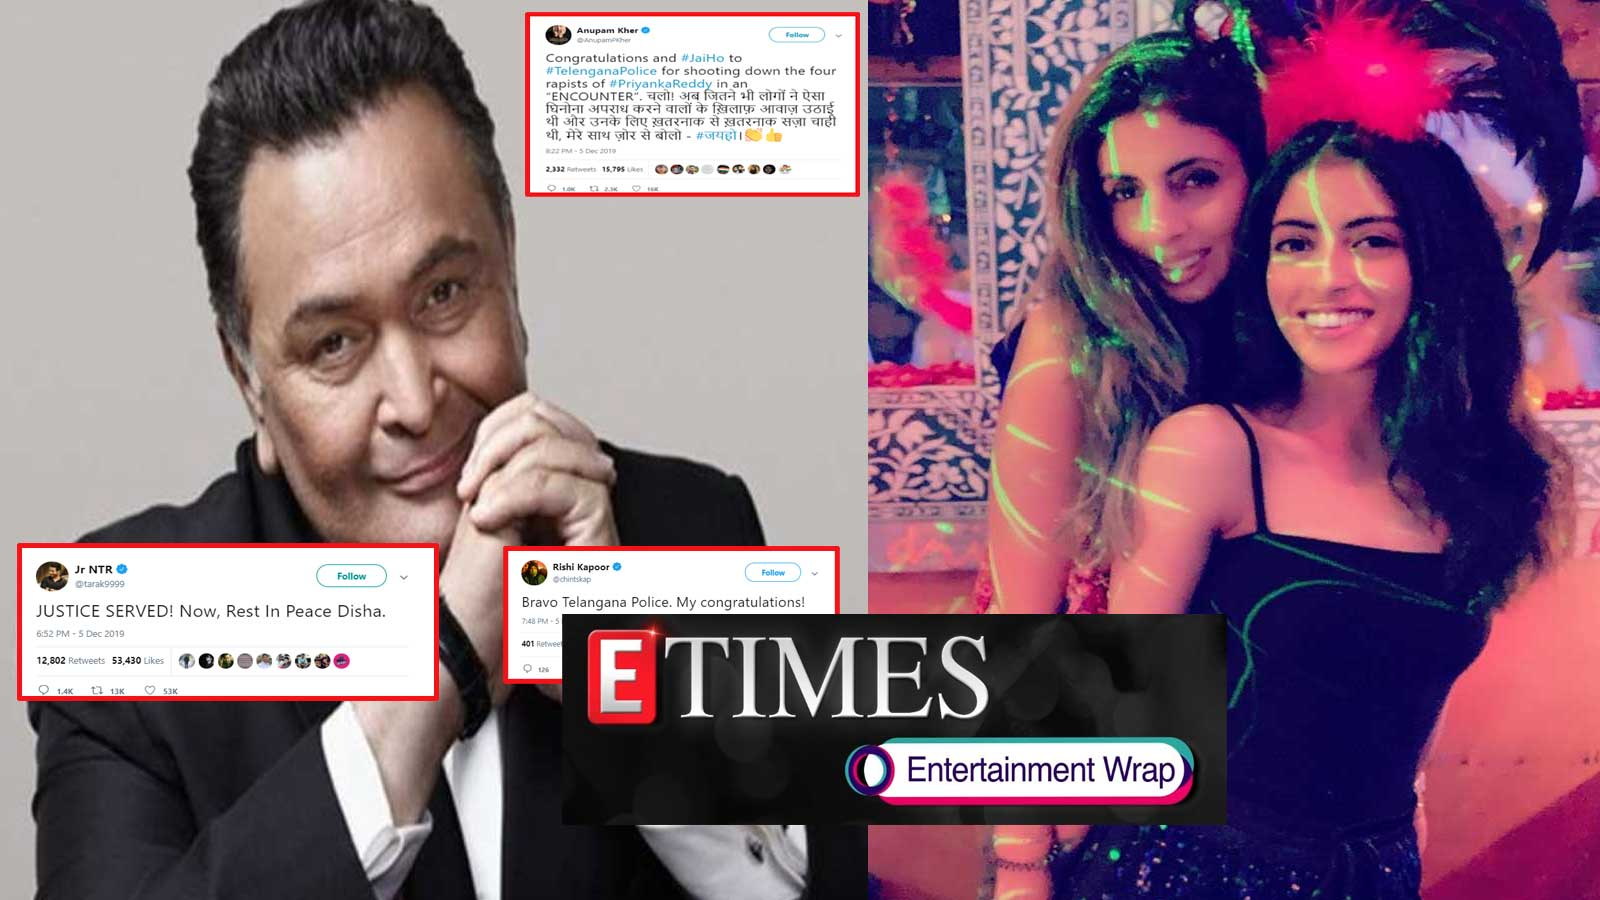 rishi-kapoor-nagarjuna-among-others-praise-telangana-police-for-hyderabad-encounter-shweta-abhishek-bachchan-wish-navya-naveli-on-her-birthday-and-more